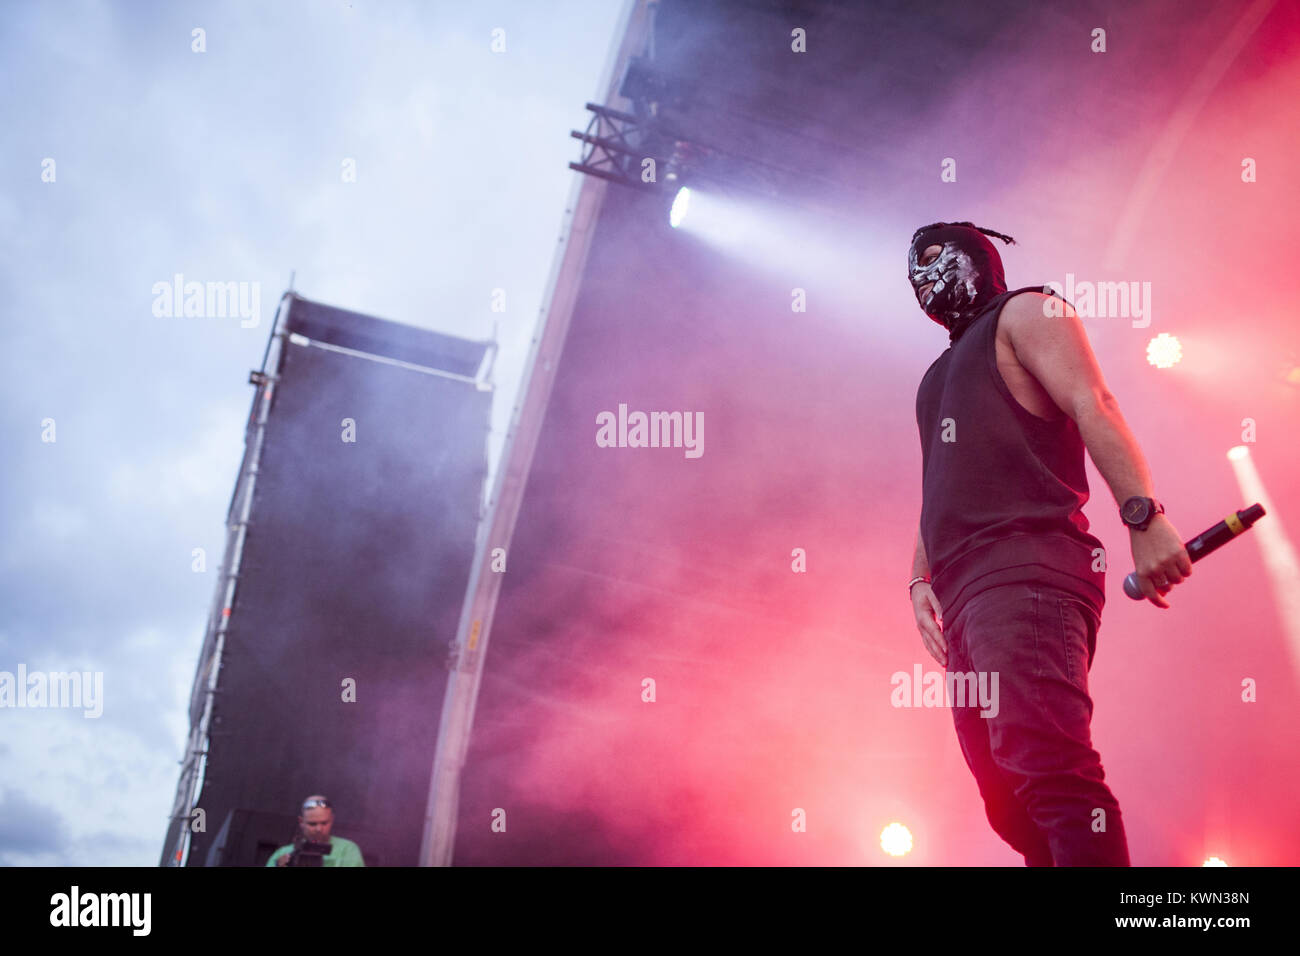 The German rapper Karuzo pictured at a live Genetikk gig at